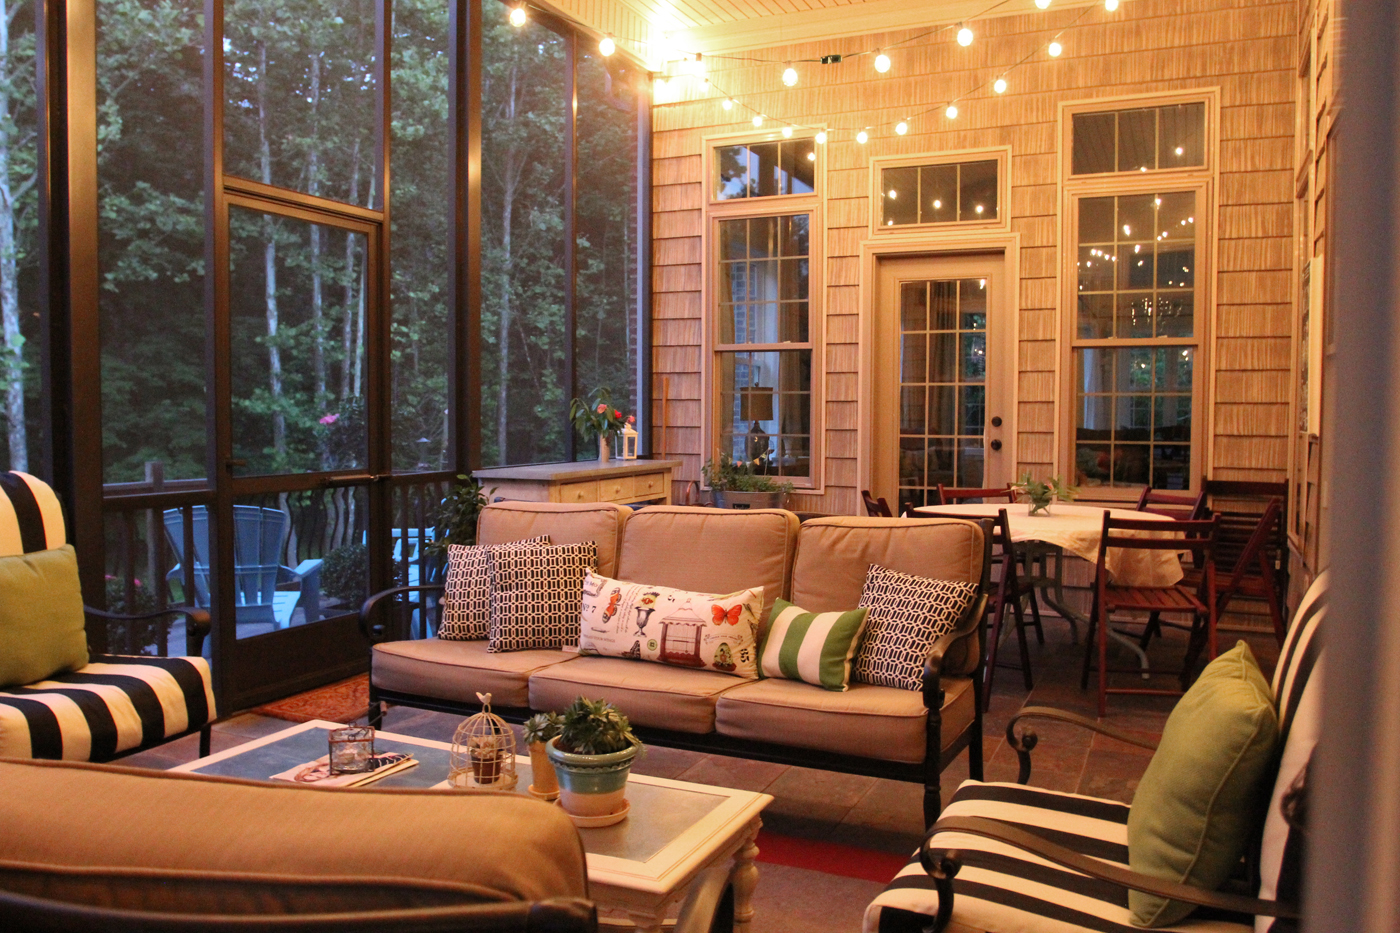 Screen porch with string lights  One day